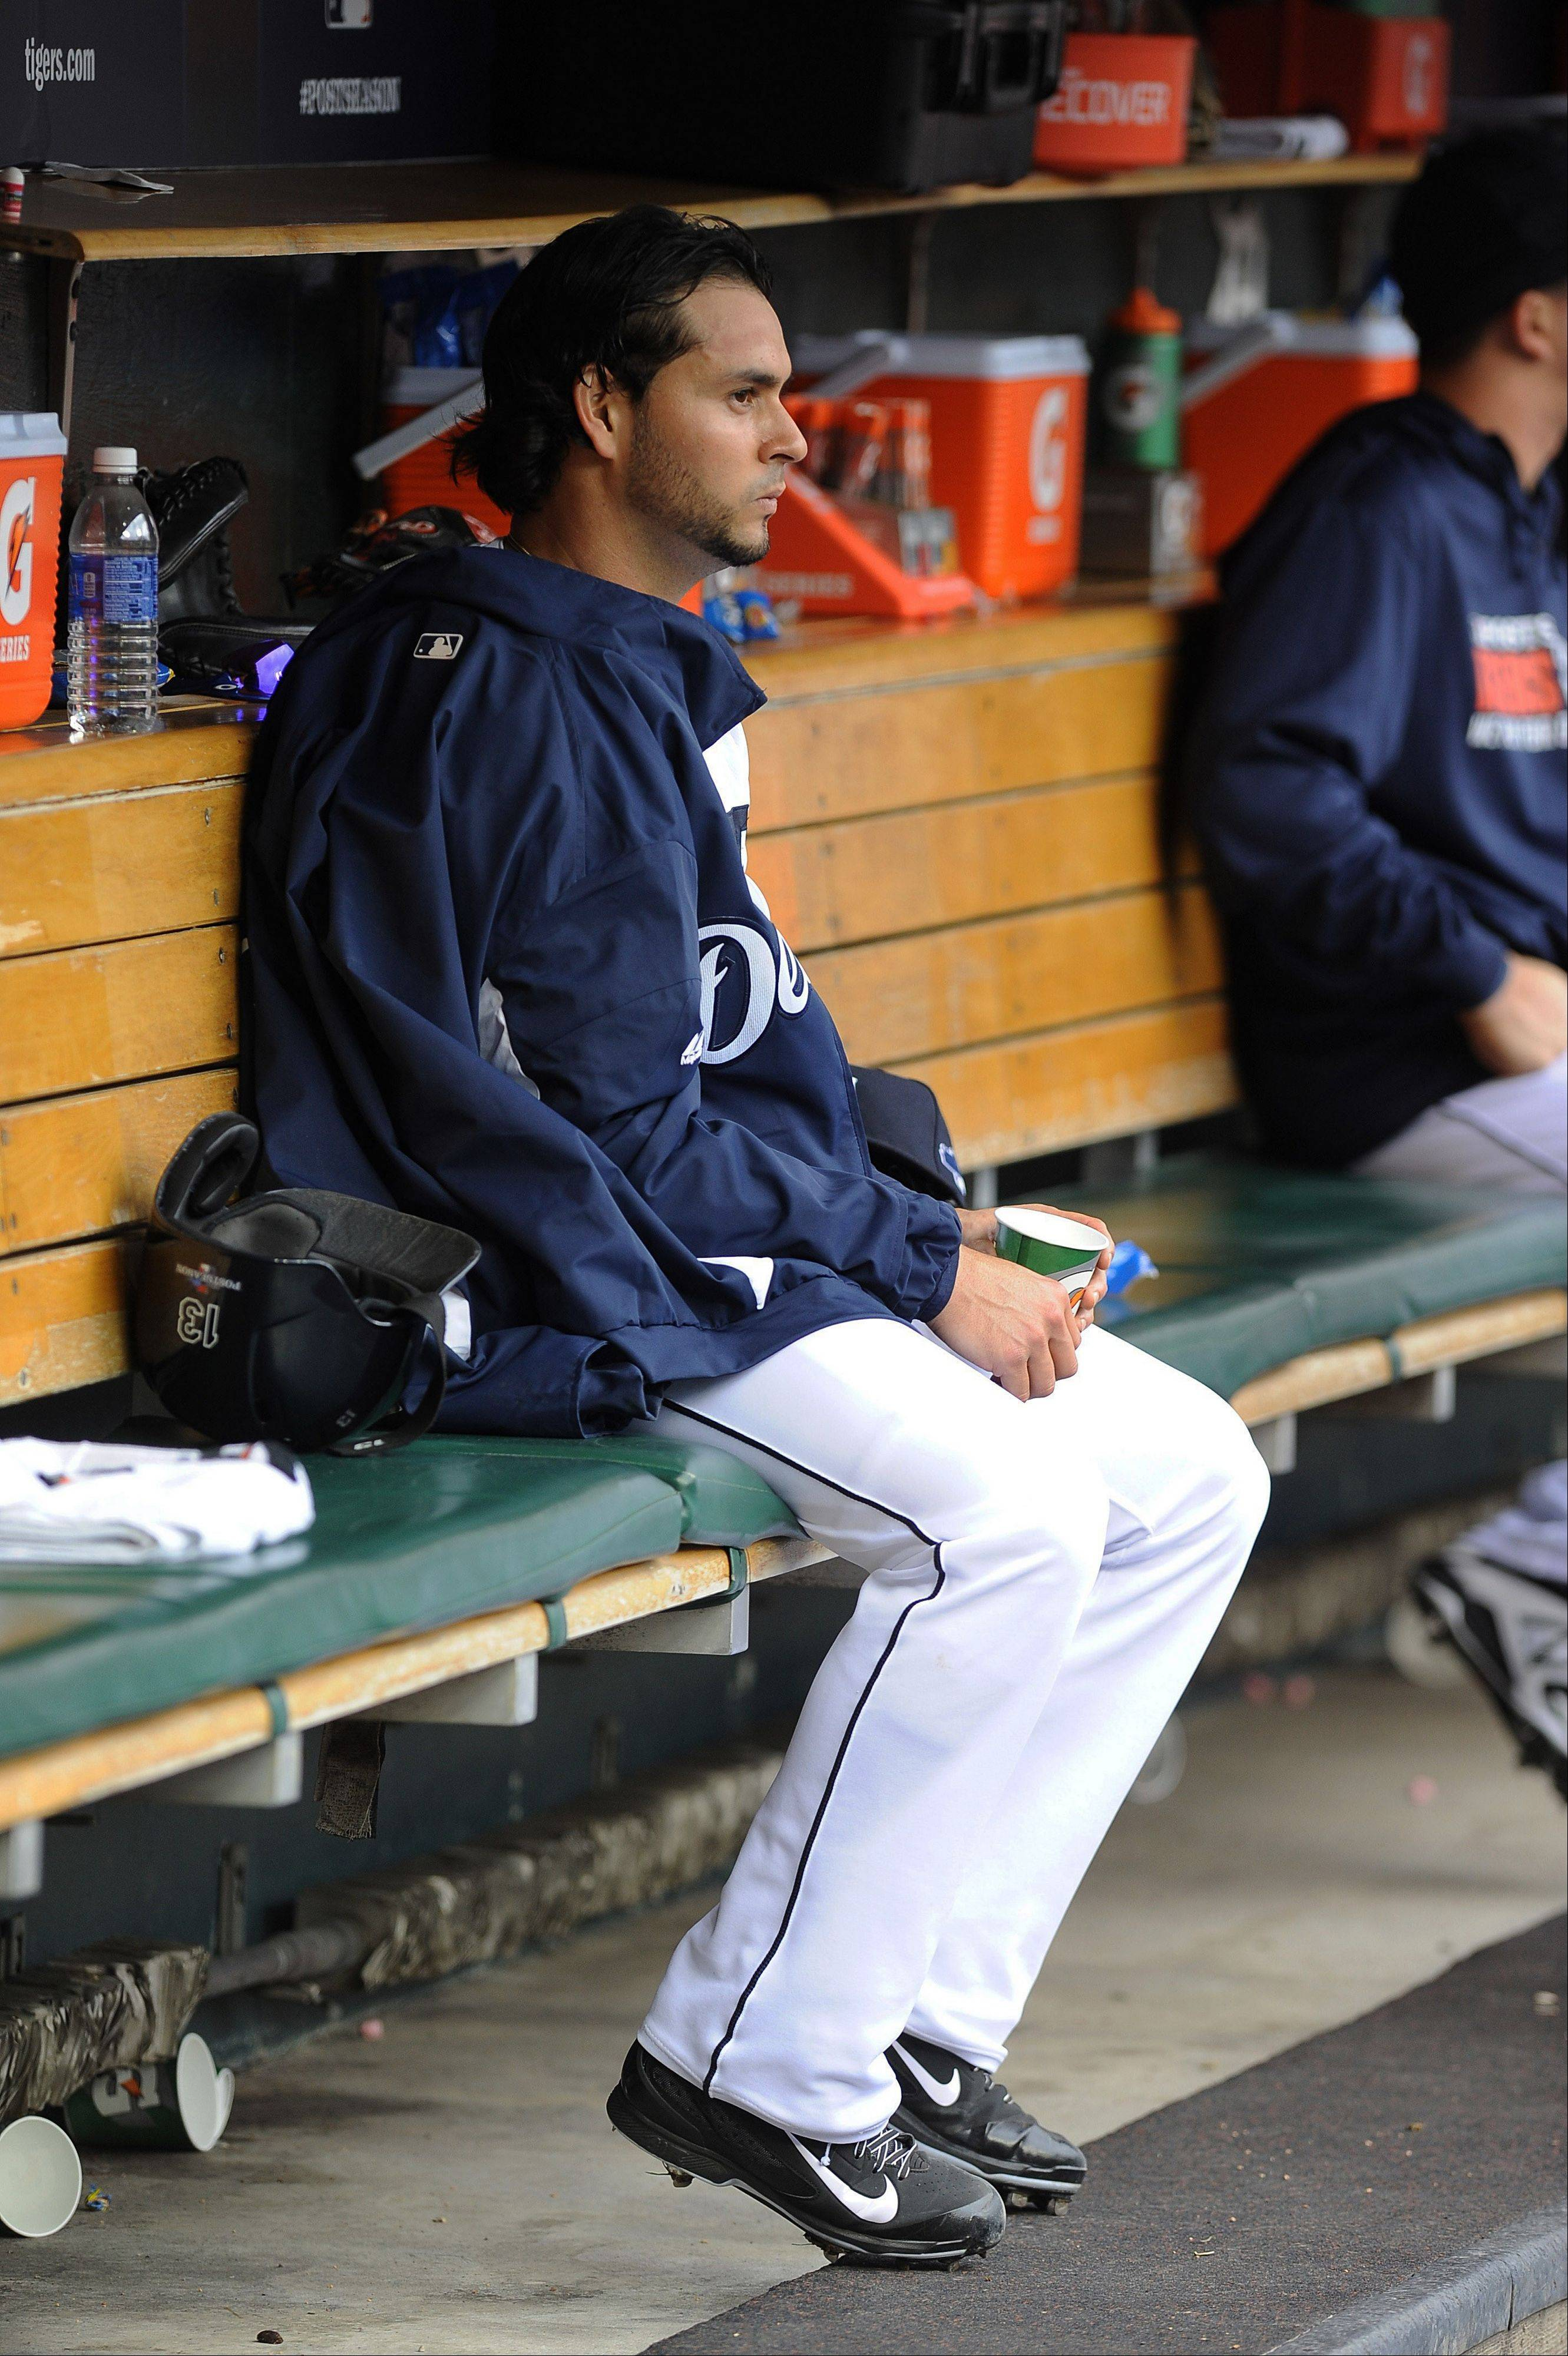 Tigers starting pitcher Anibal Sanchez sits in the dugout after being pulled during the fifth inning of Game 3 against the Oakland Athletics on Monday in Detroit.